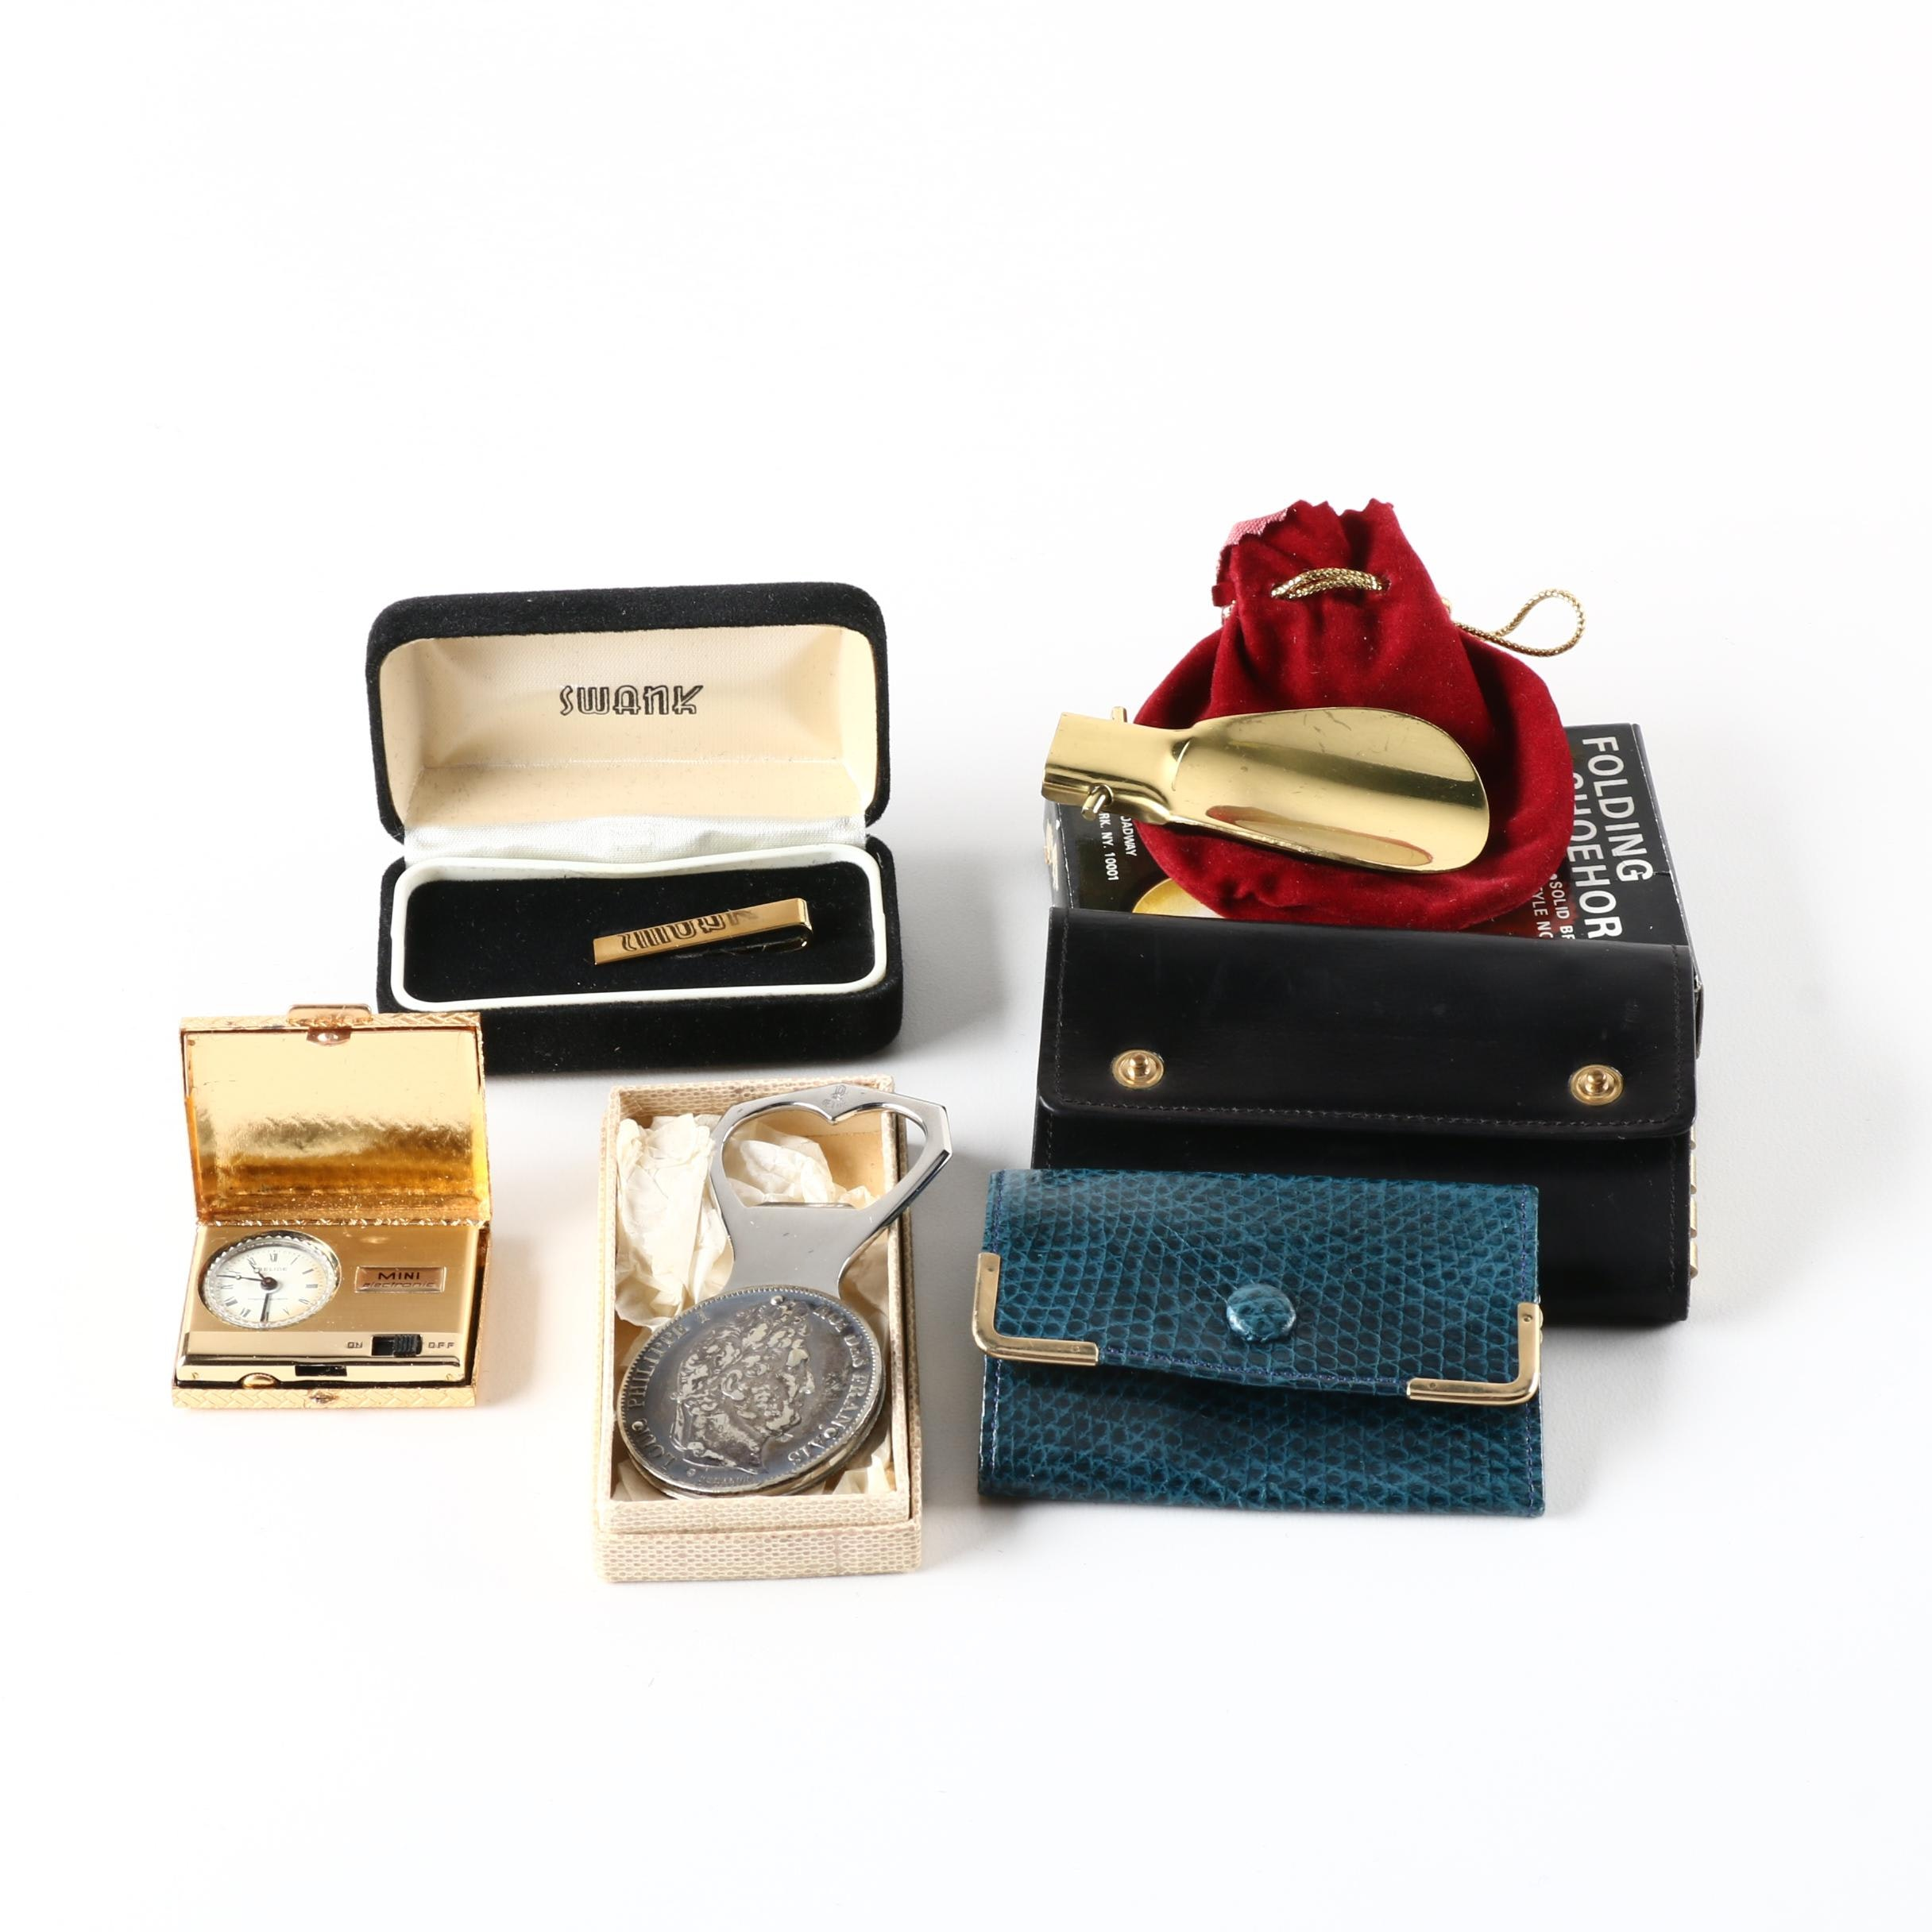 Group of Men's Gifts Including Tie Clip, Key Wallet and Coin Medallion Bottle Opener